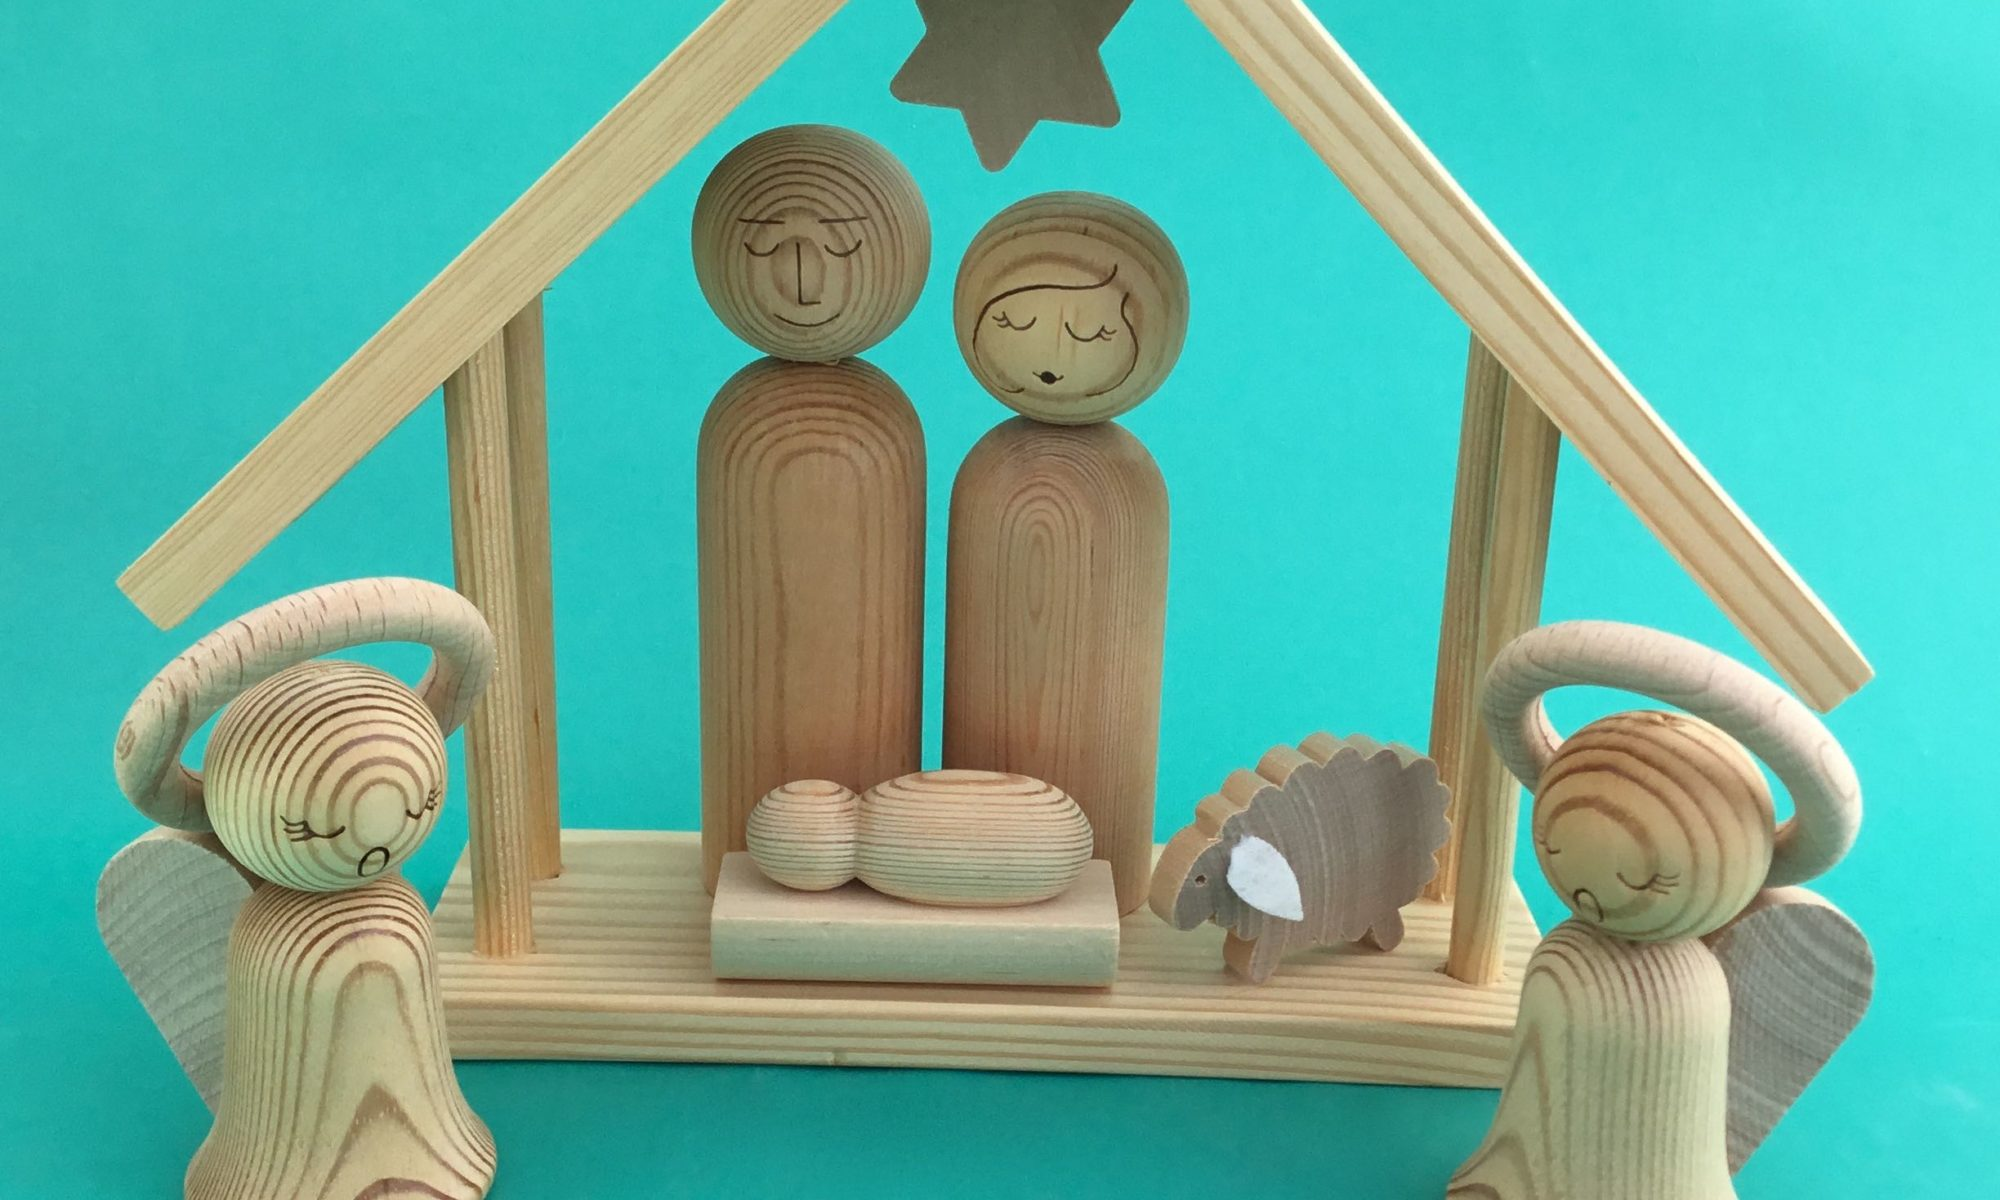 WOODEN NATIVITY FROM FINLAND